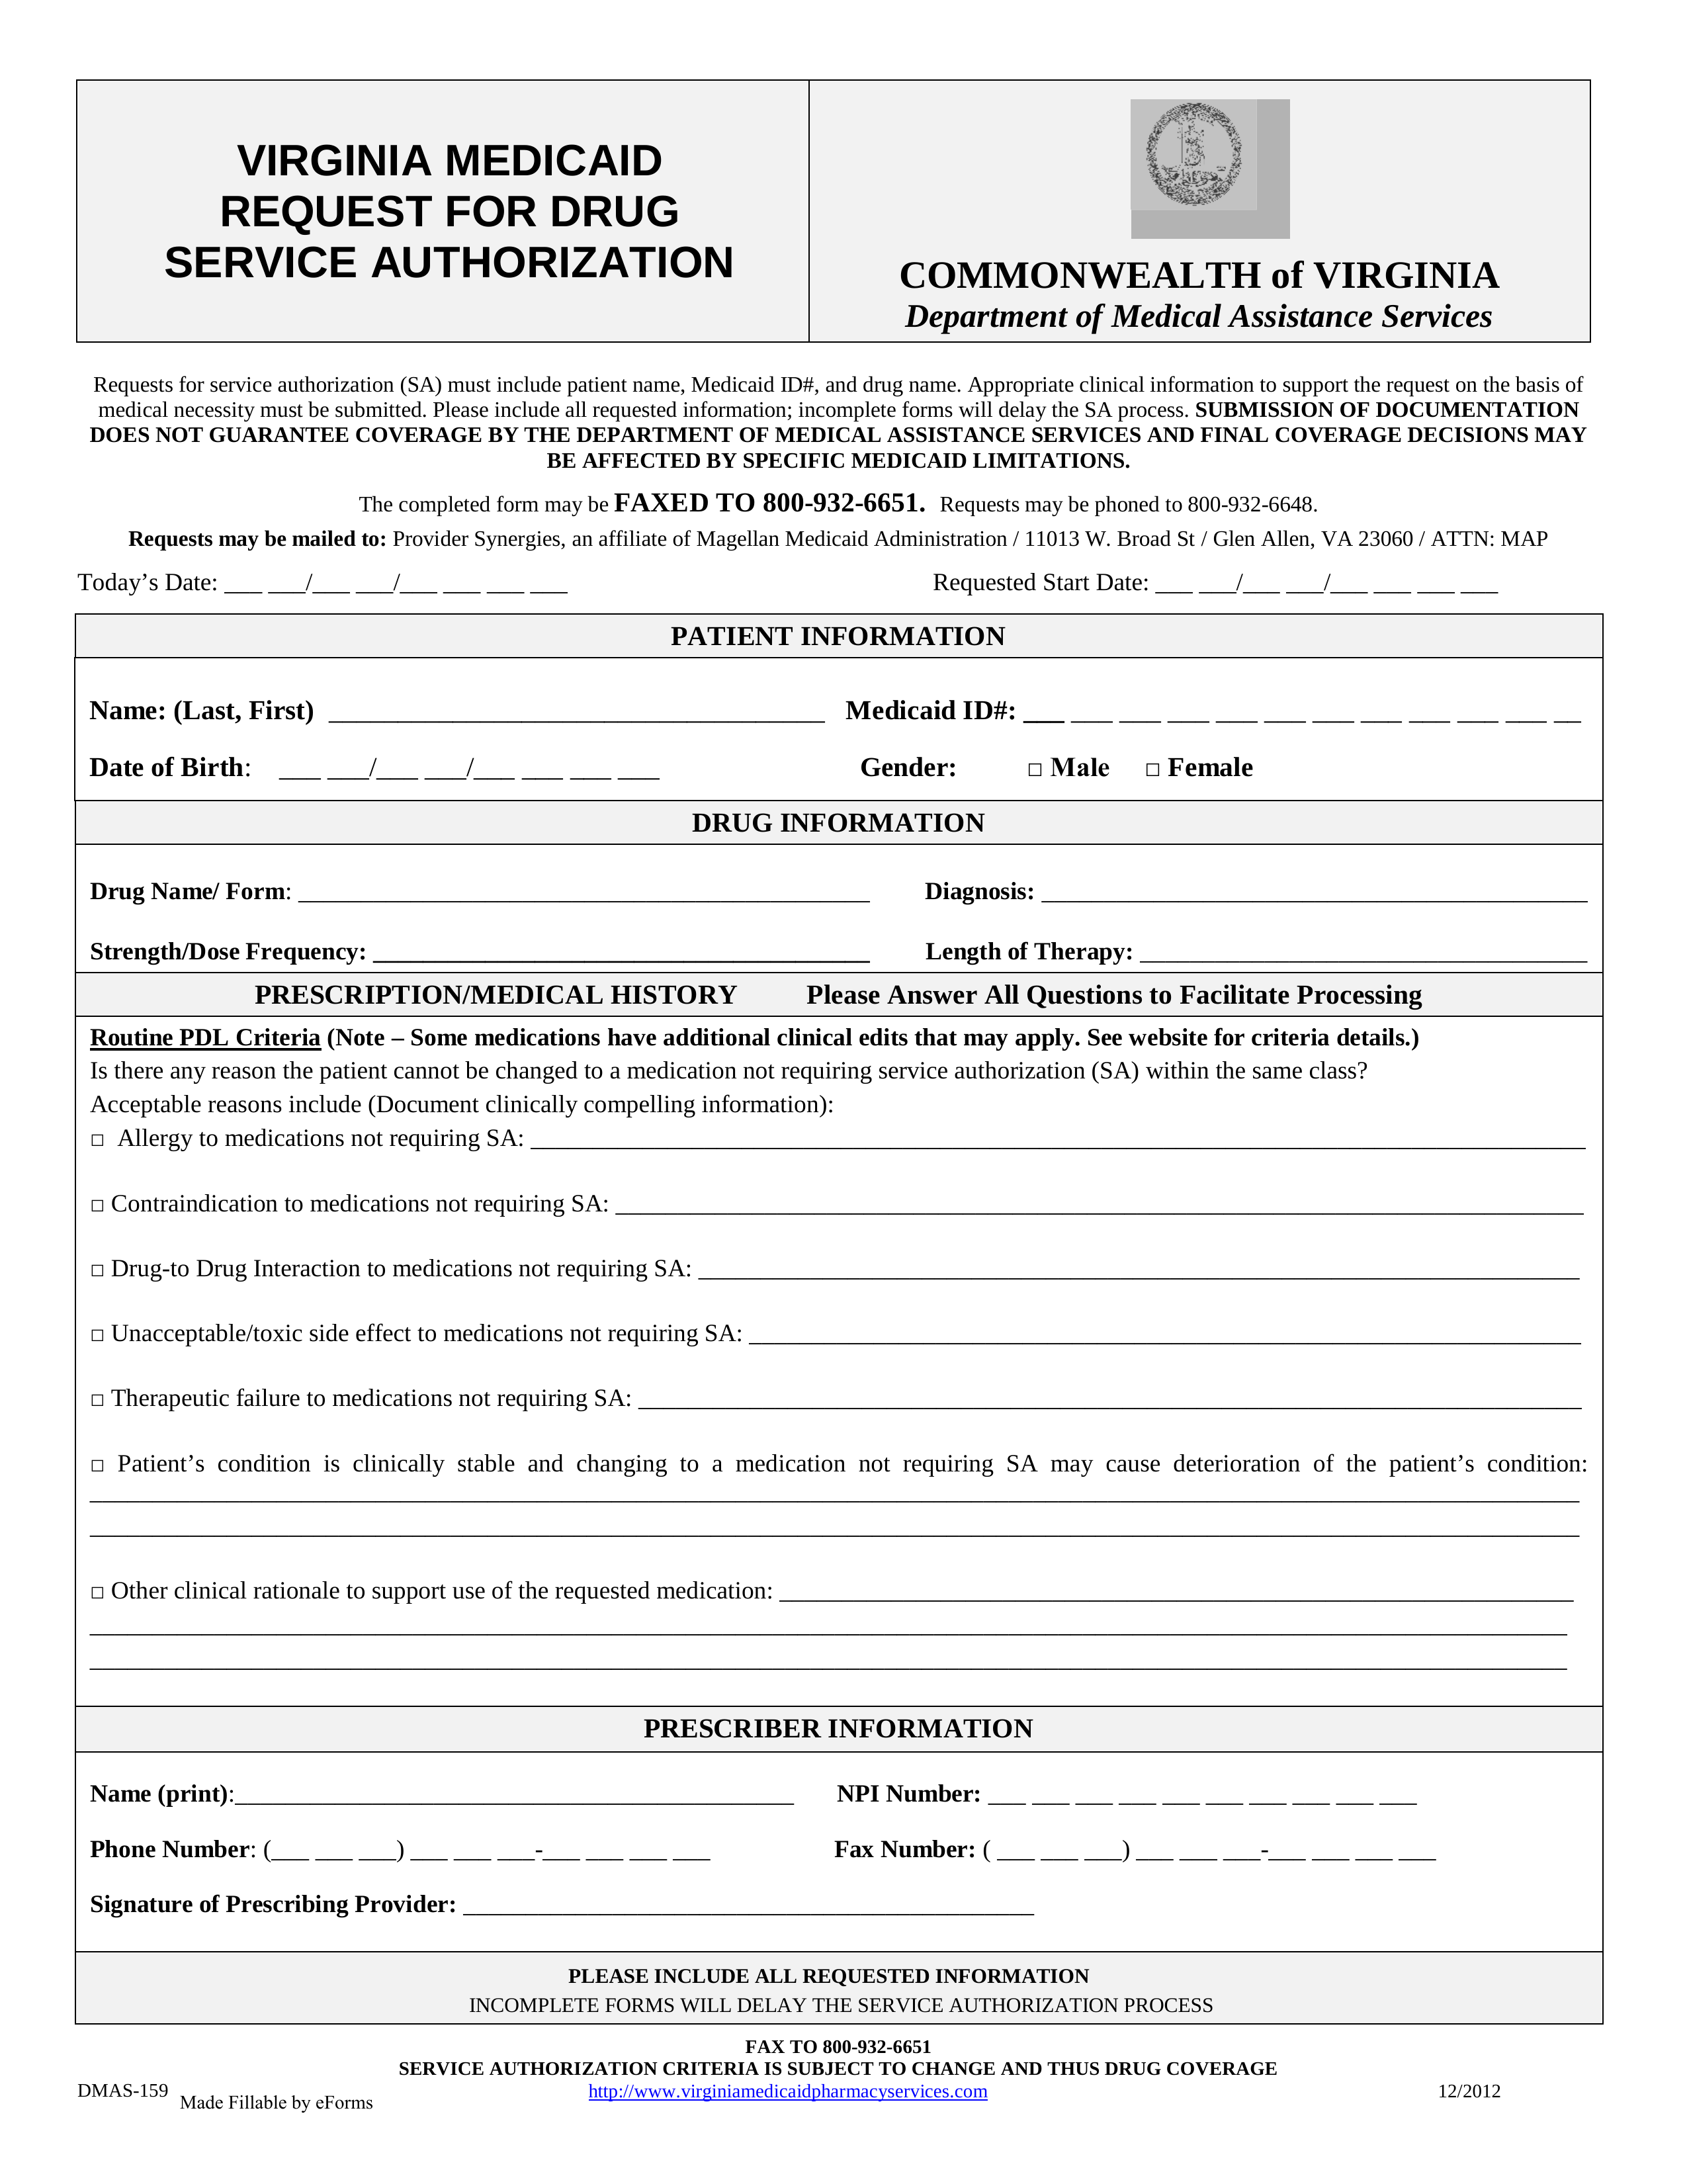 Bill Of Sale Virginia >> Free Virginia Medicaid Prior Authorization Form - PDF   eForms – Free Fillable Forms